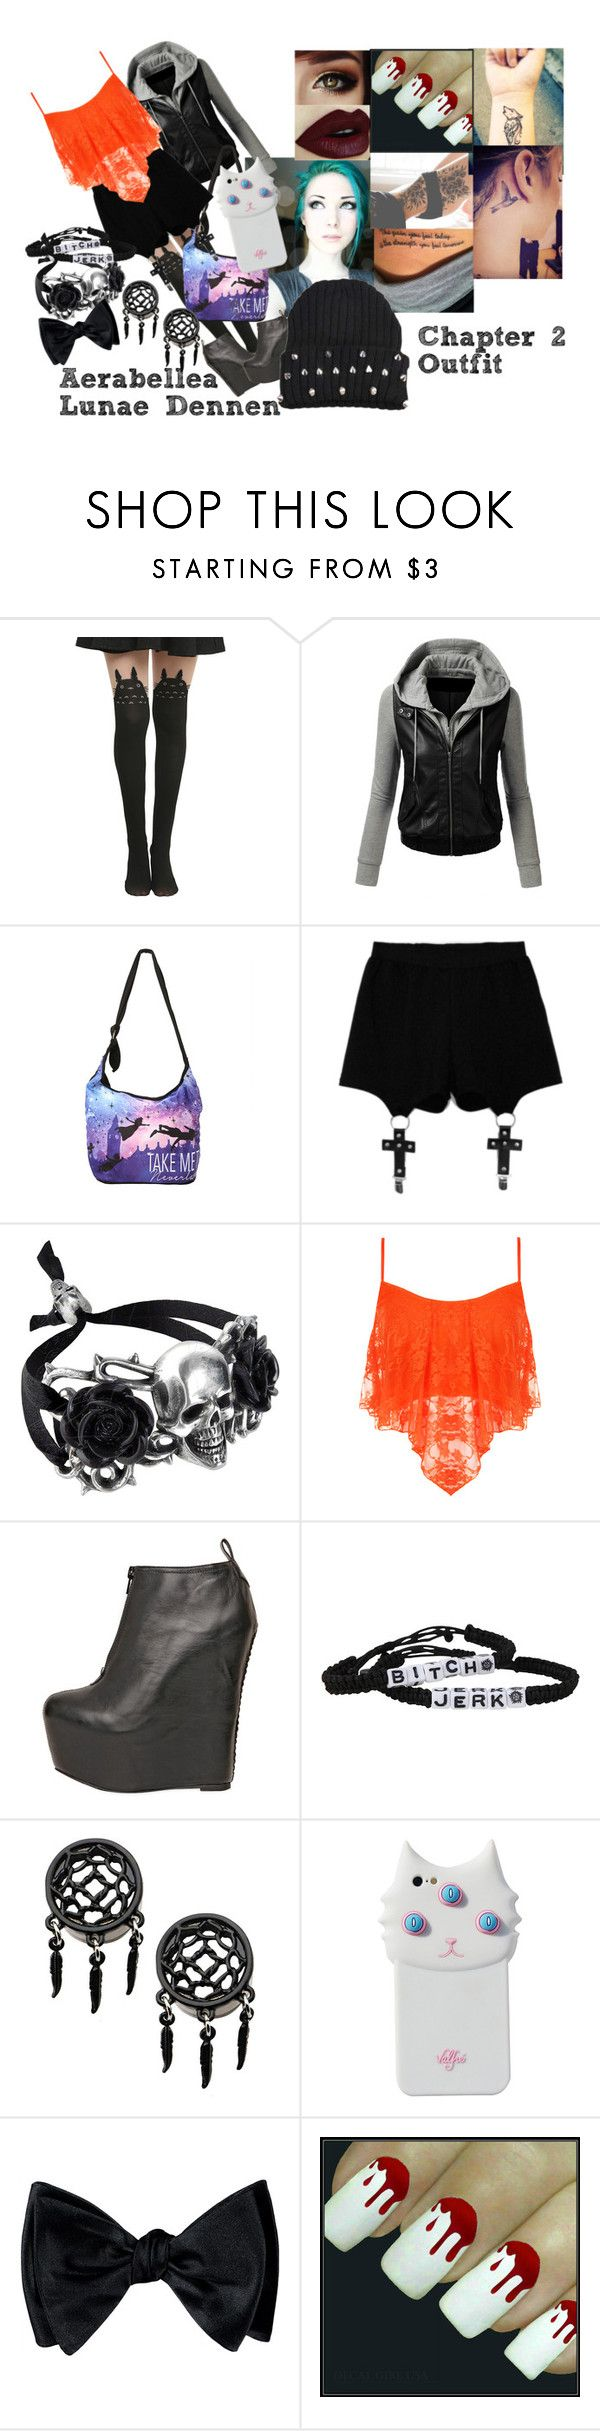 """Aerabellea Lunae Dennen Ch2 Outfit- Tattoo Parlor"" by asking-shaforostov ❤ liked on Polyvore featuring Ghibli, Disney, Chicnova Fashion, WearAll, Jeffrey Campbell and Valfré"